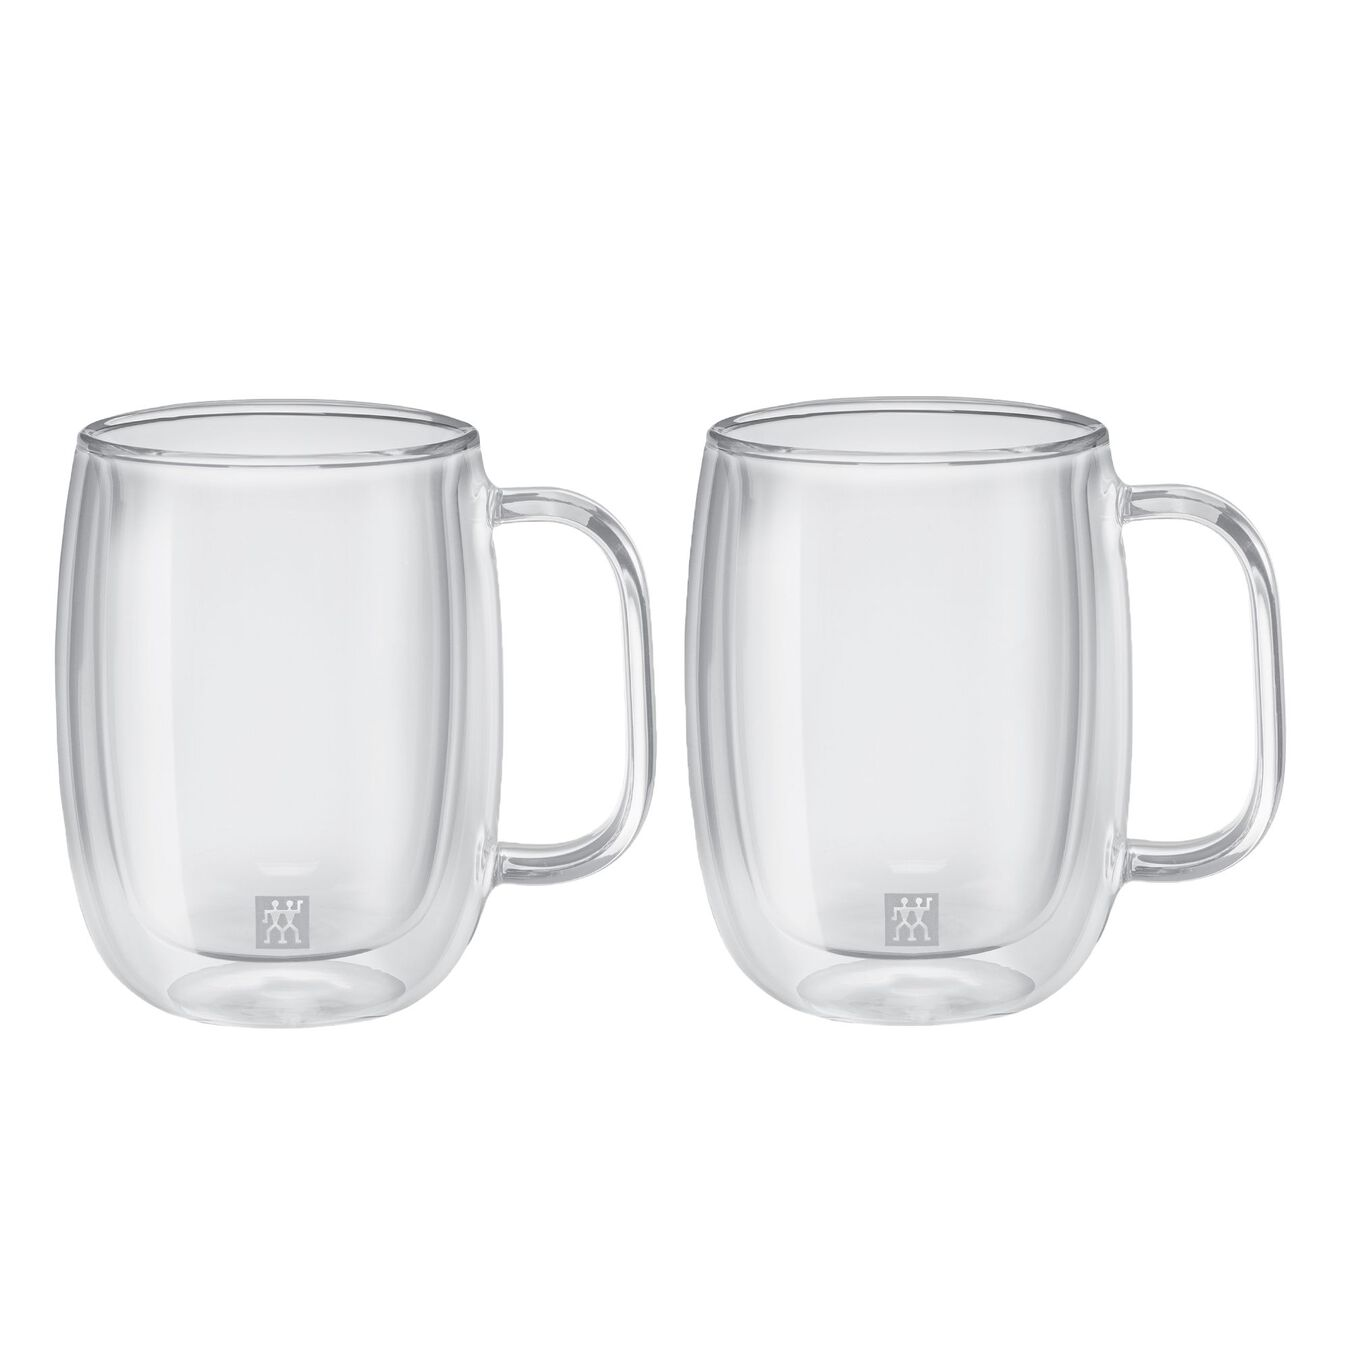 2 Piece Double-Wall Coffee Mug Set,,large 4